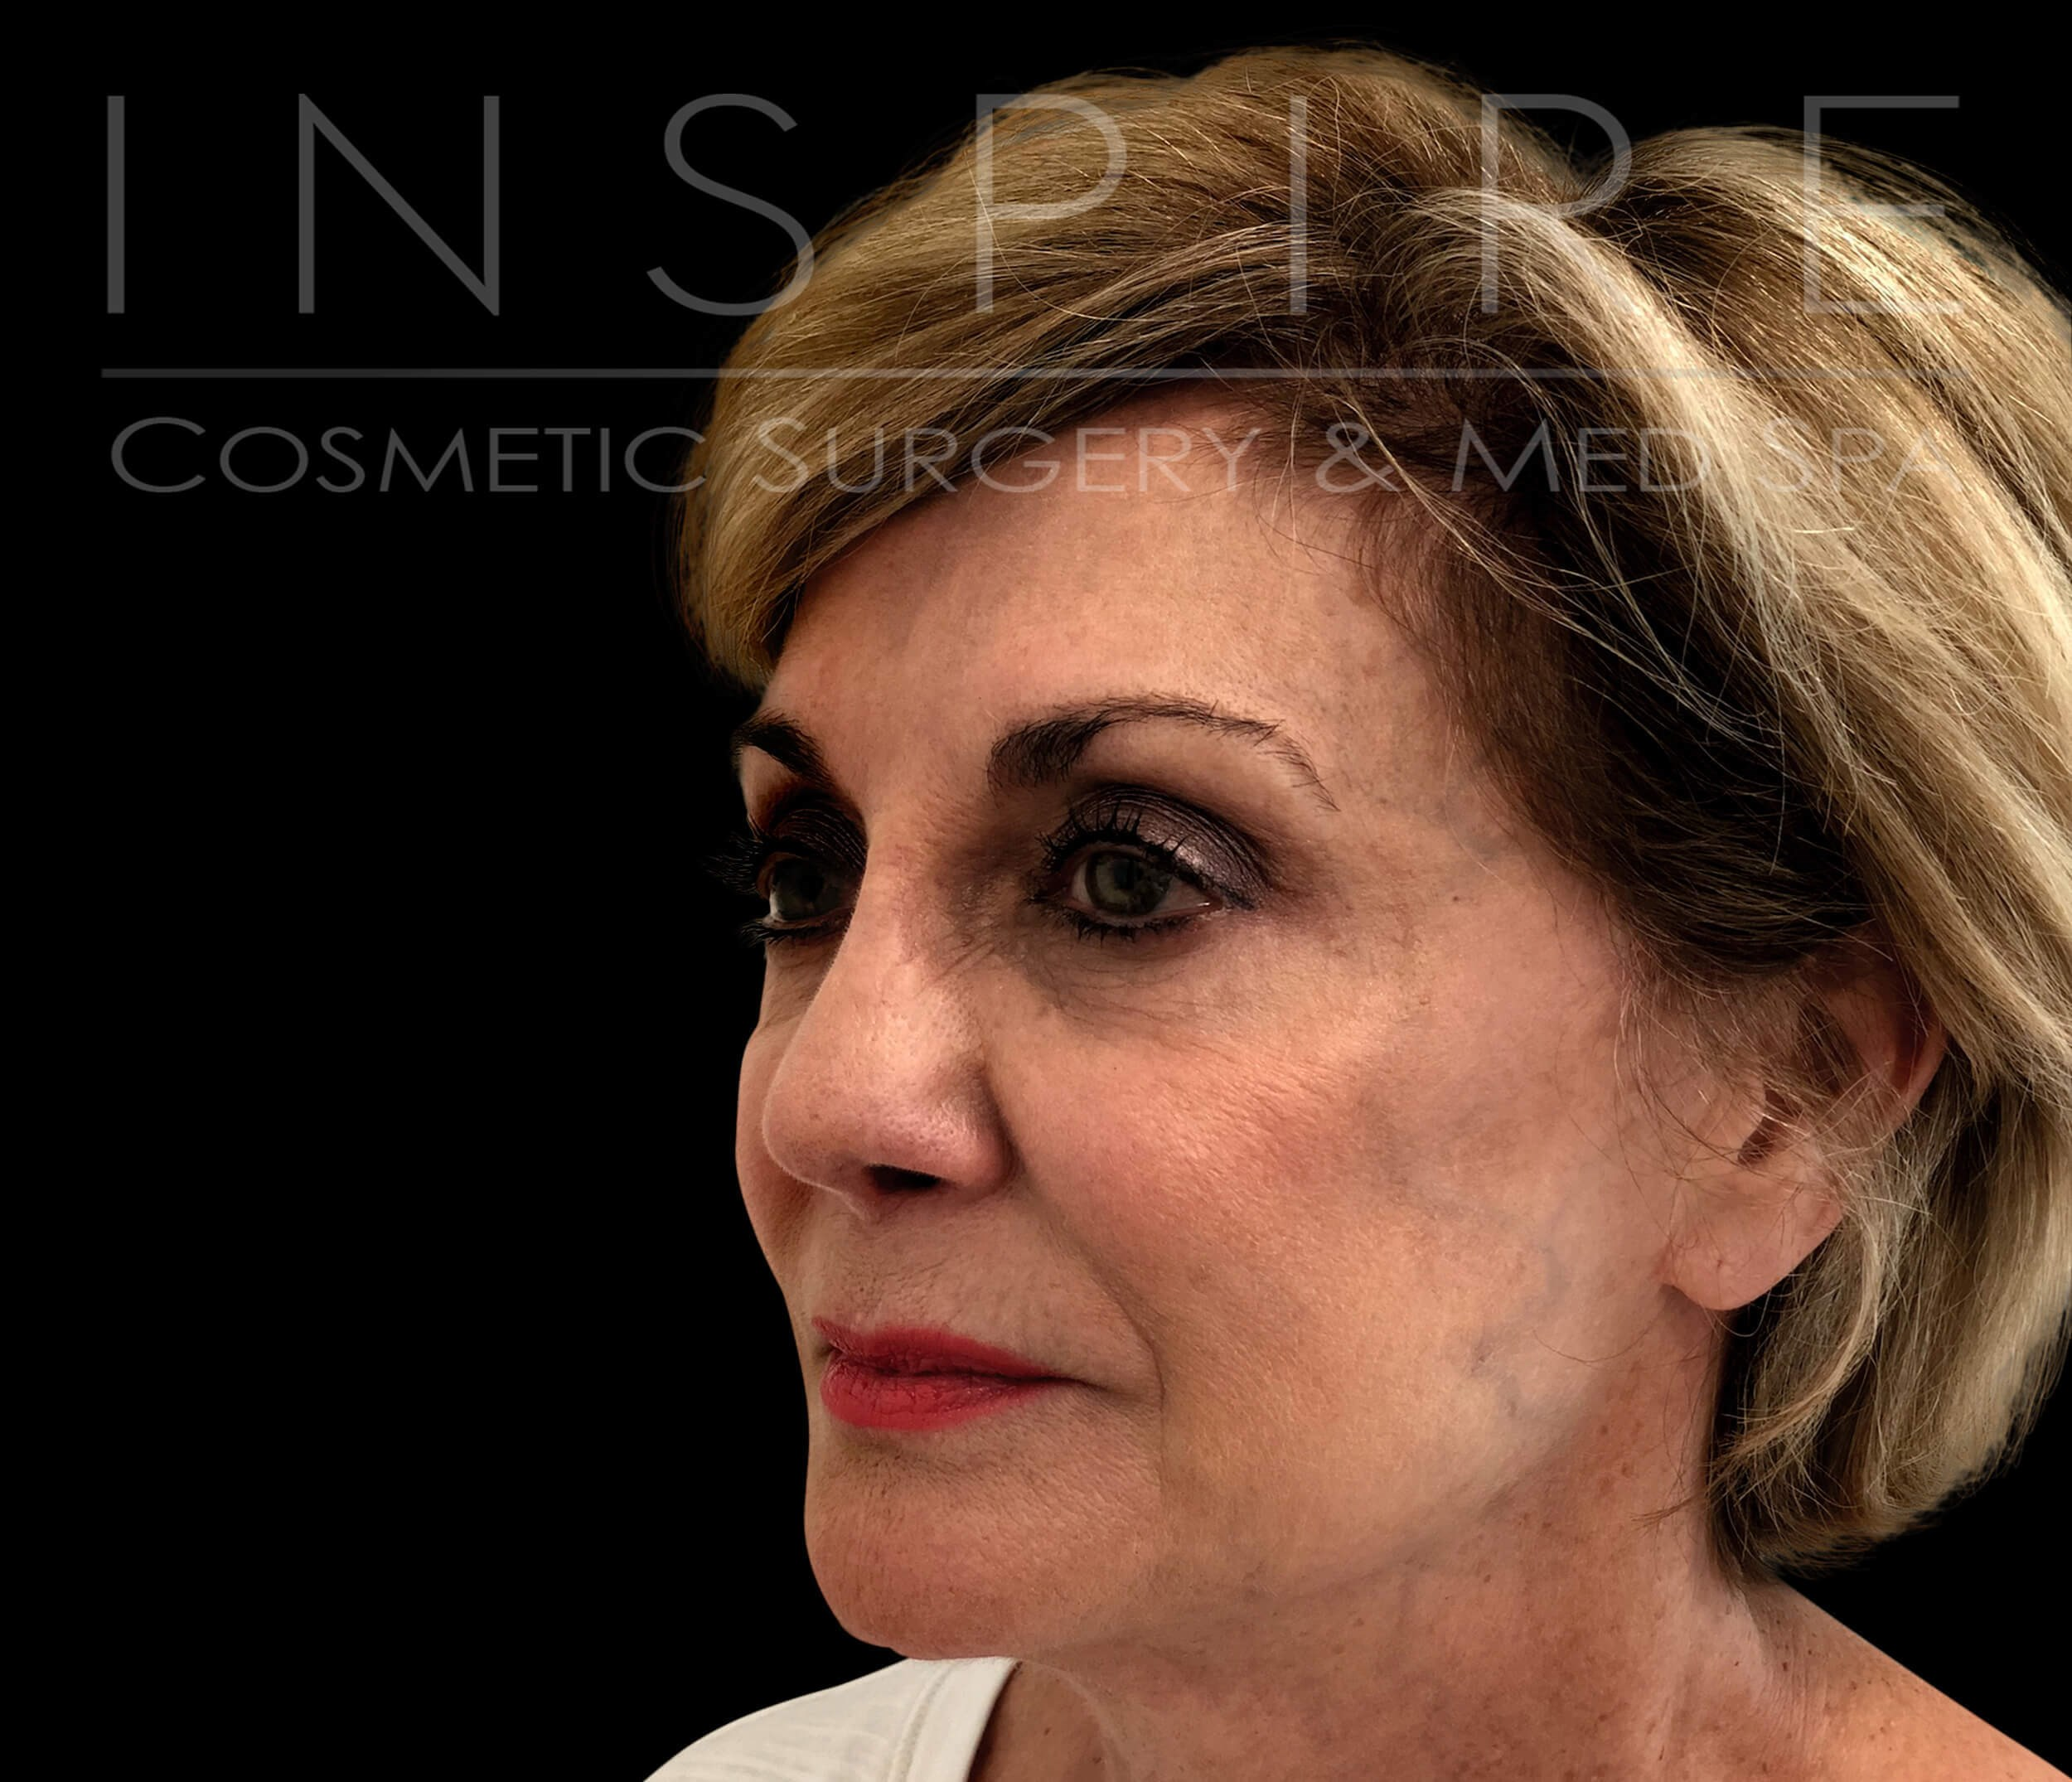 Facelift Before & After After